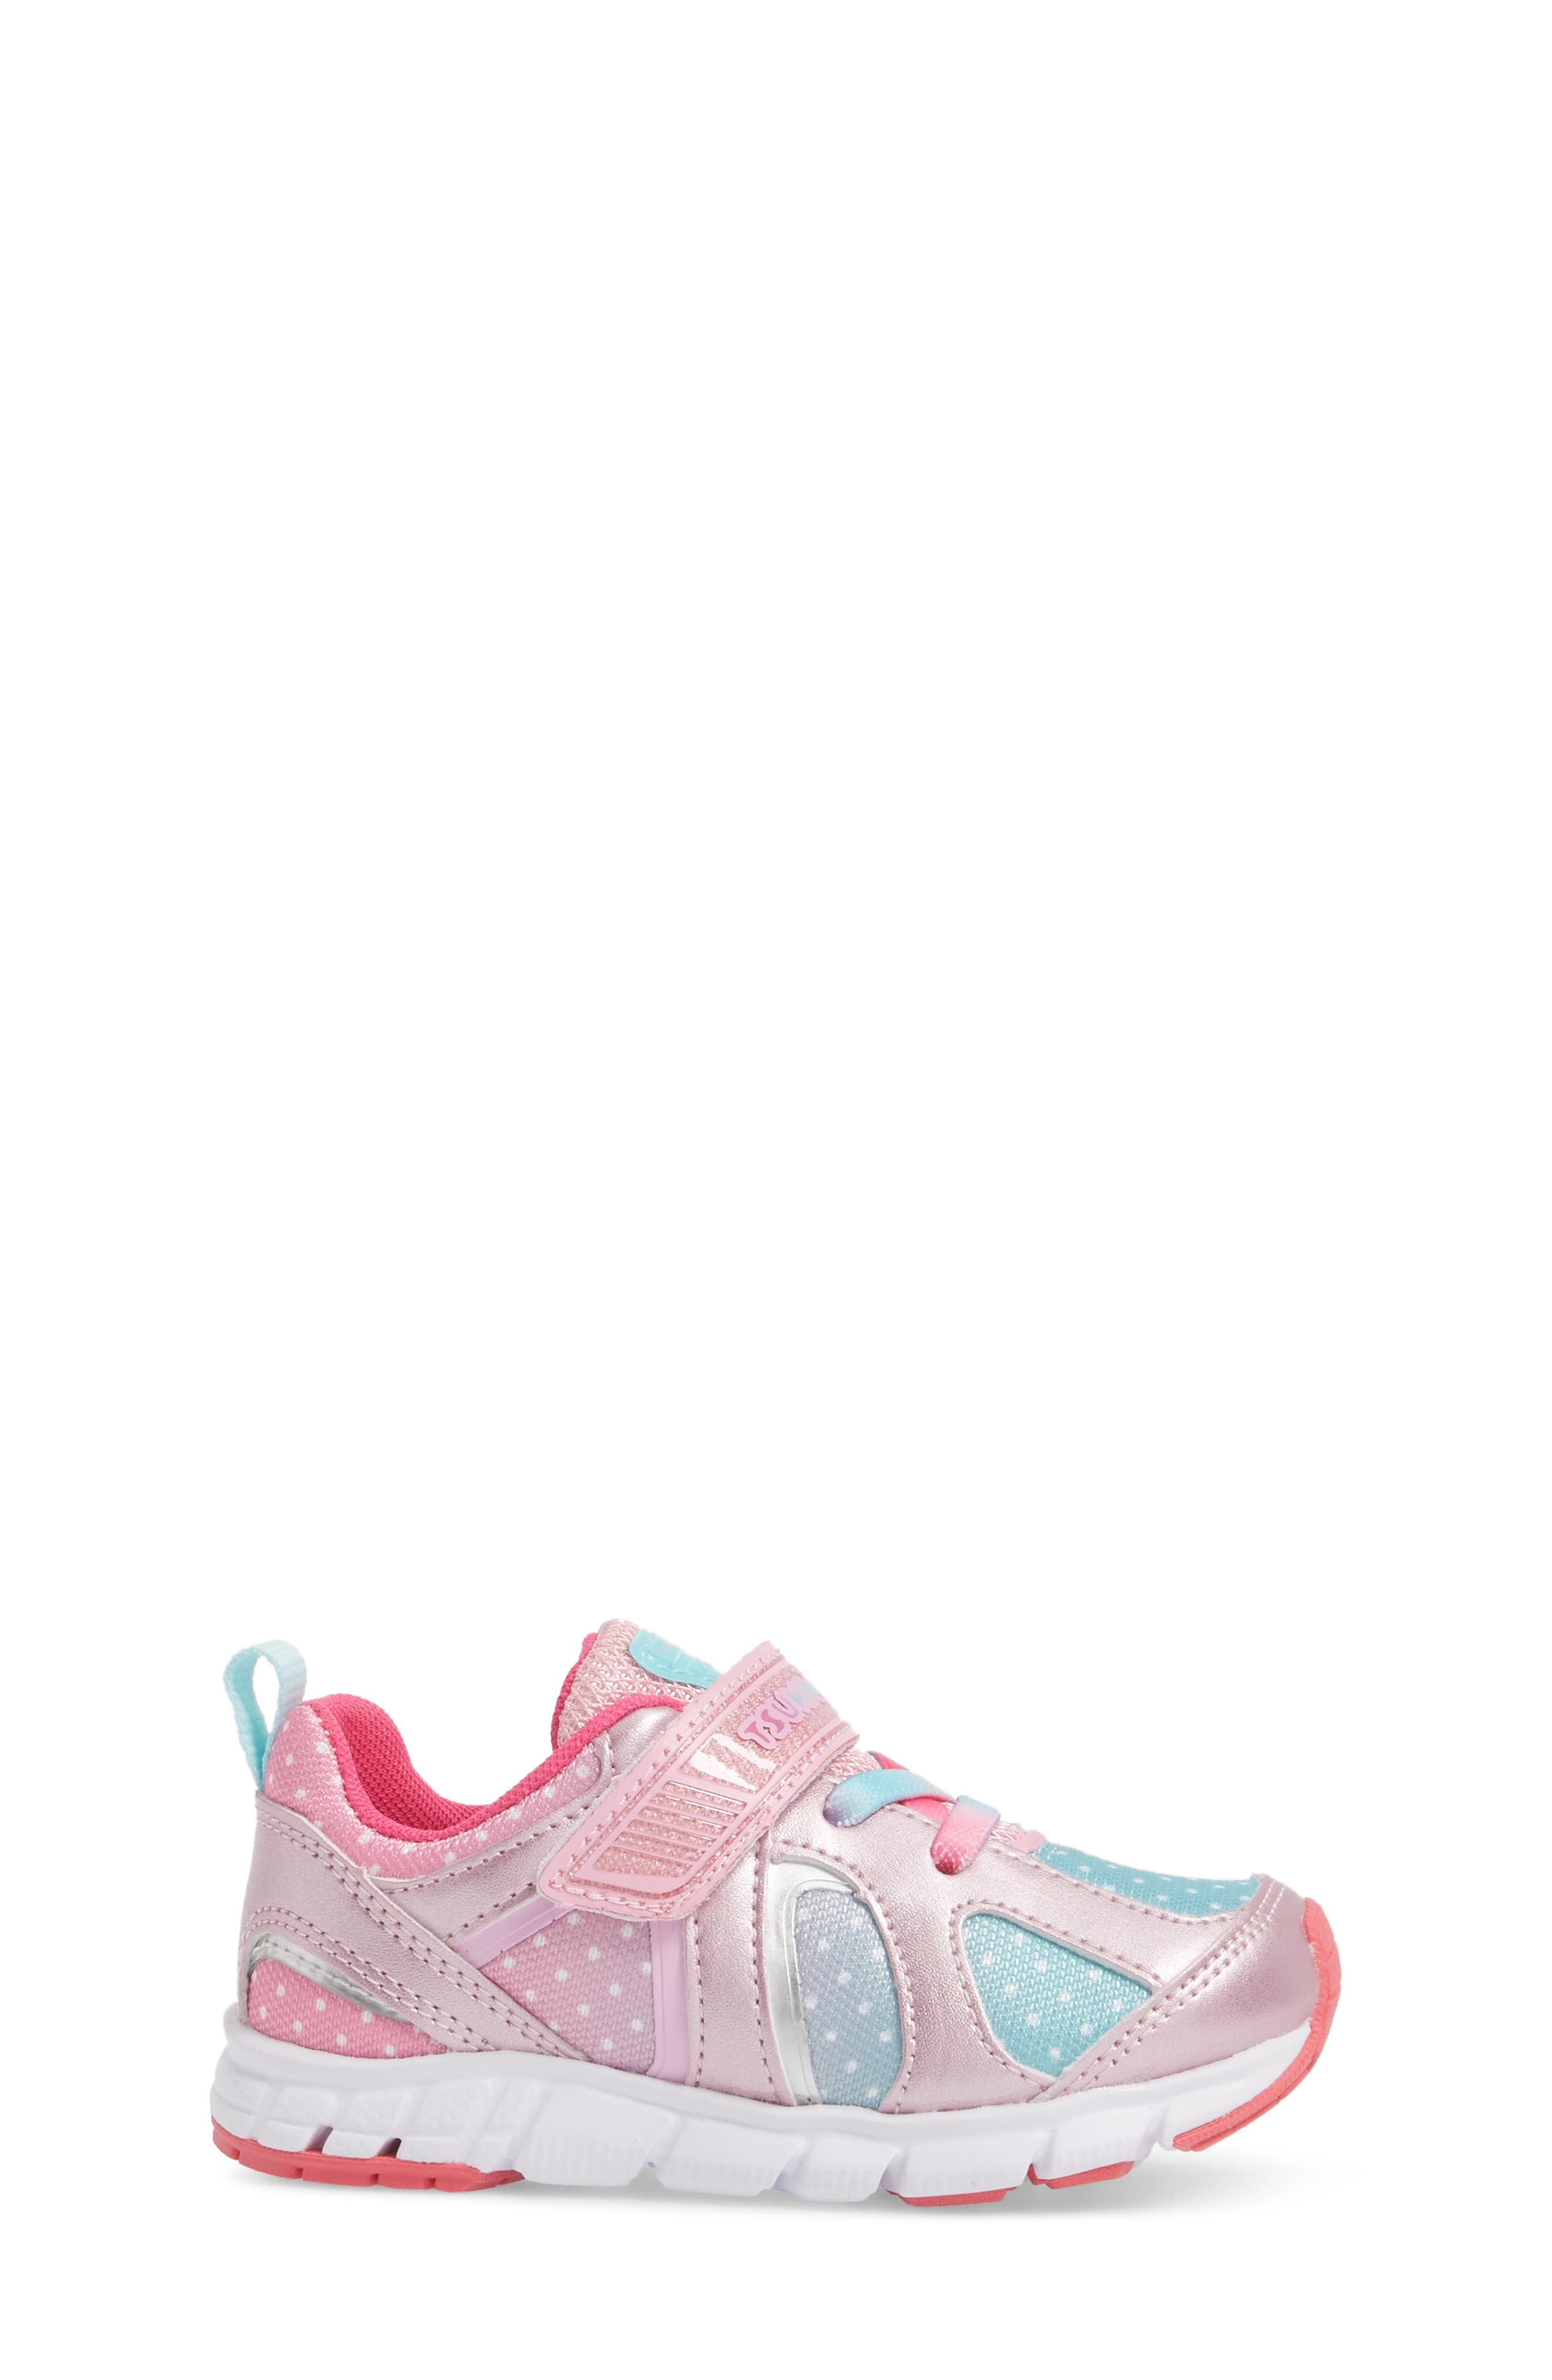 TSUKIHOSHI, Rainbow Washable Sneaker, Alternate thumbnail 3, color, ROSE/ MINT